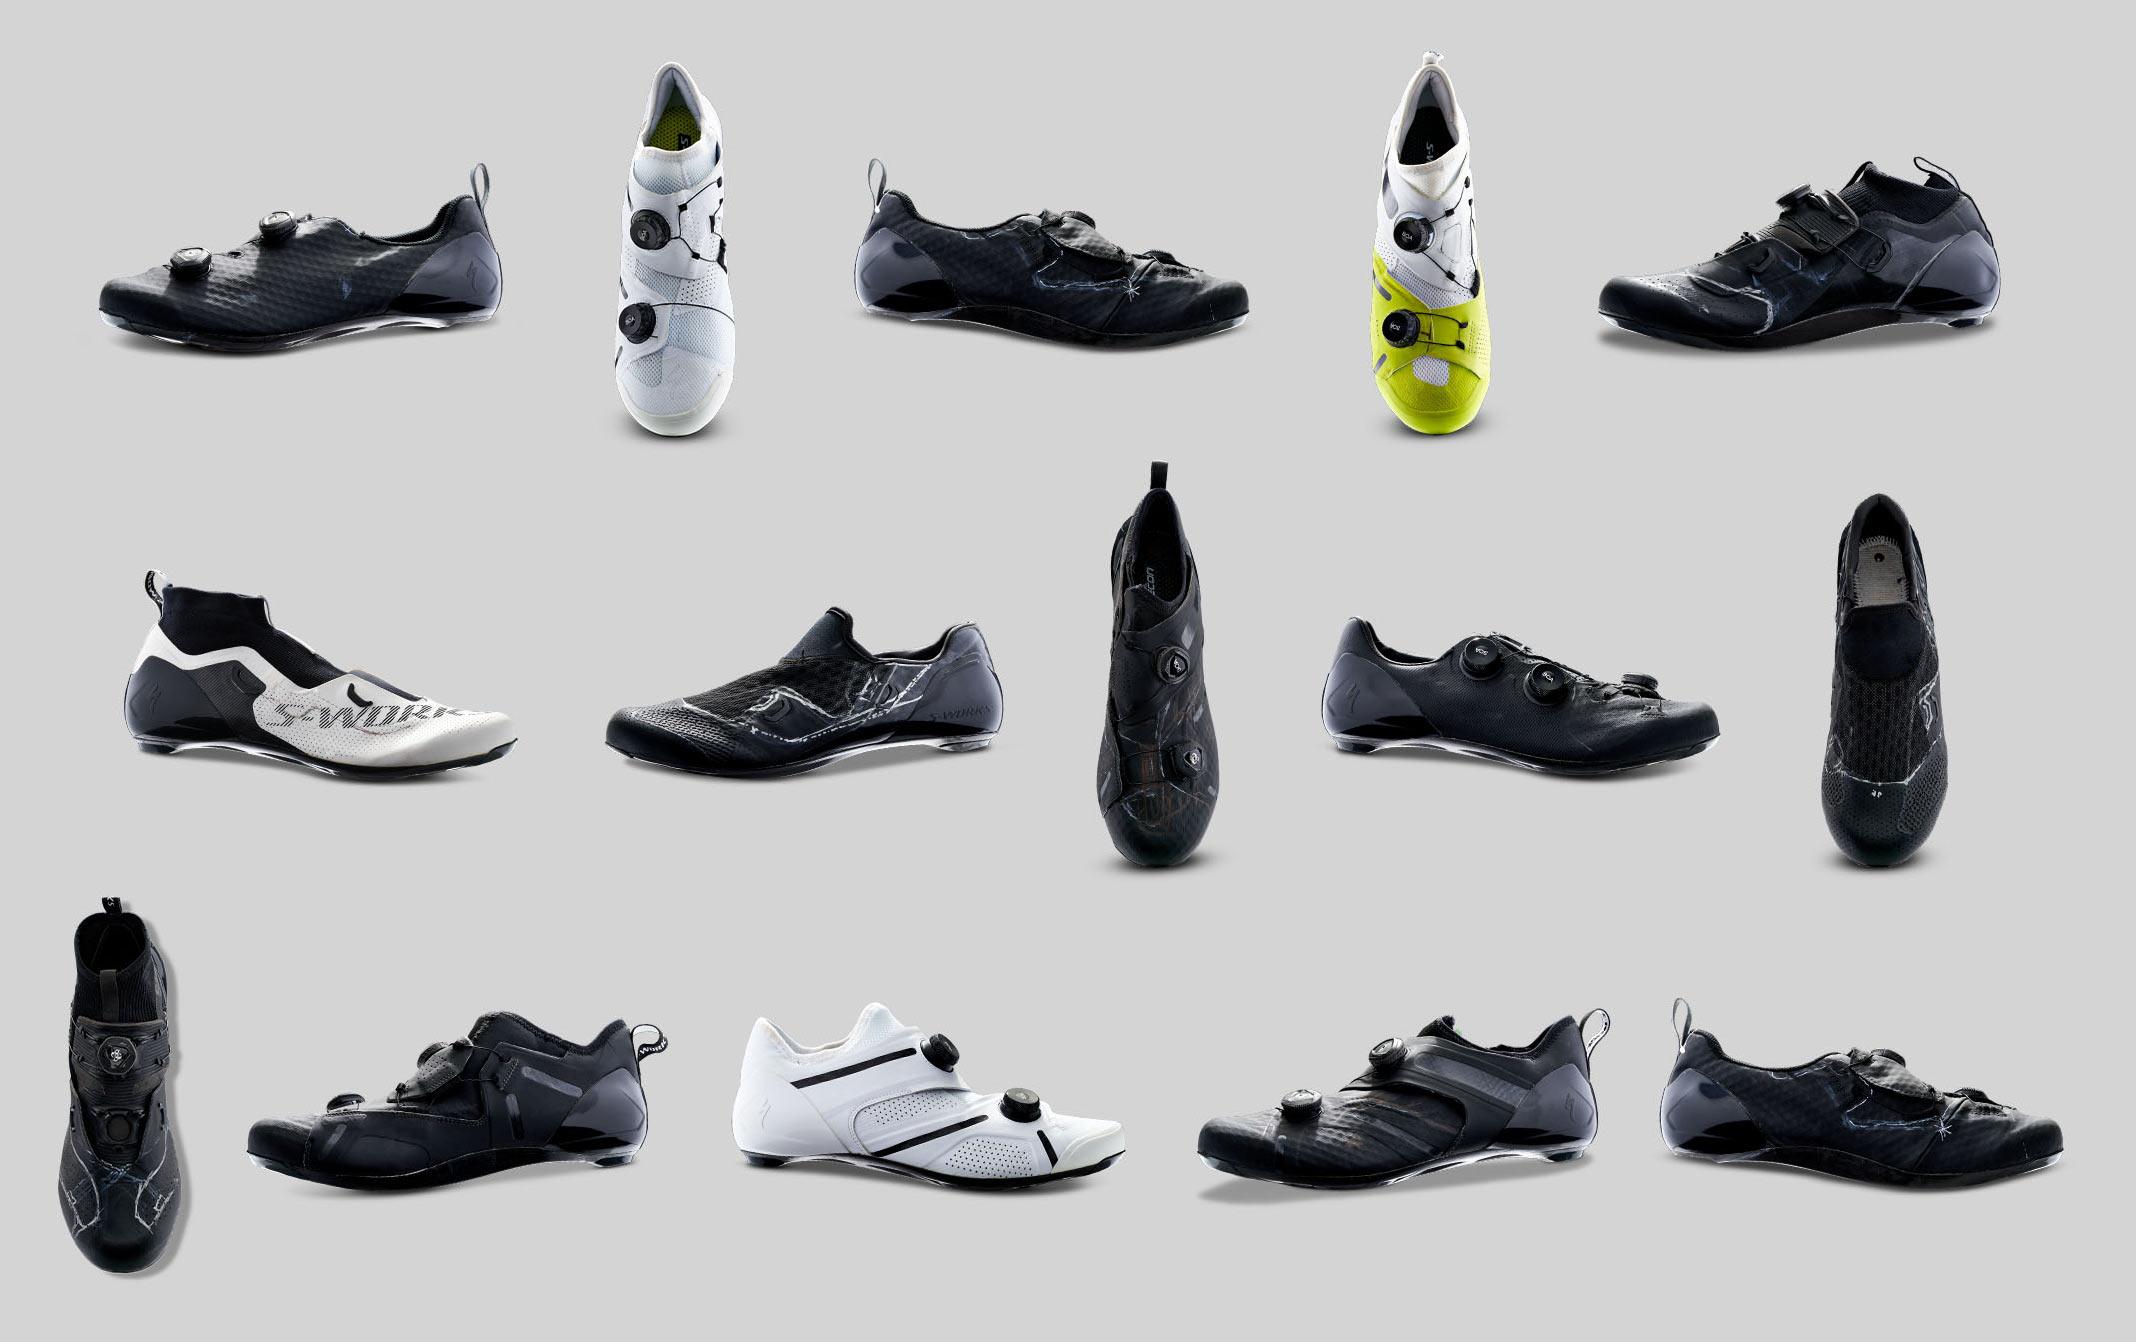 specialized ares road bike shoes prototypes and concept designs